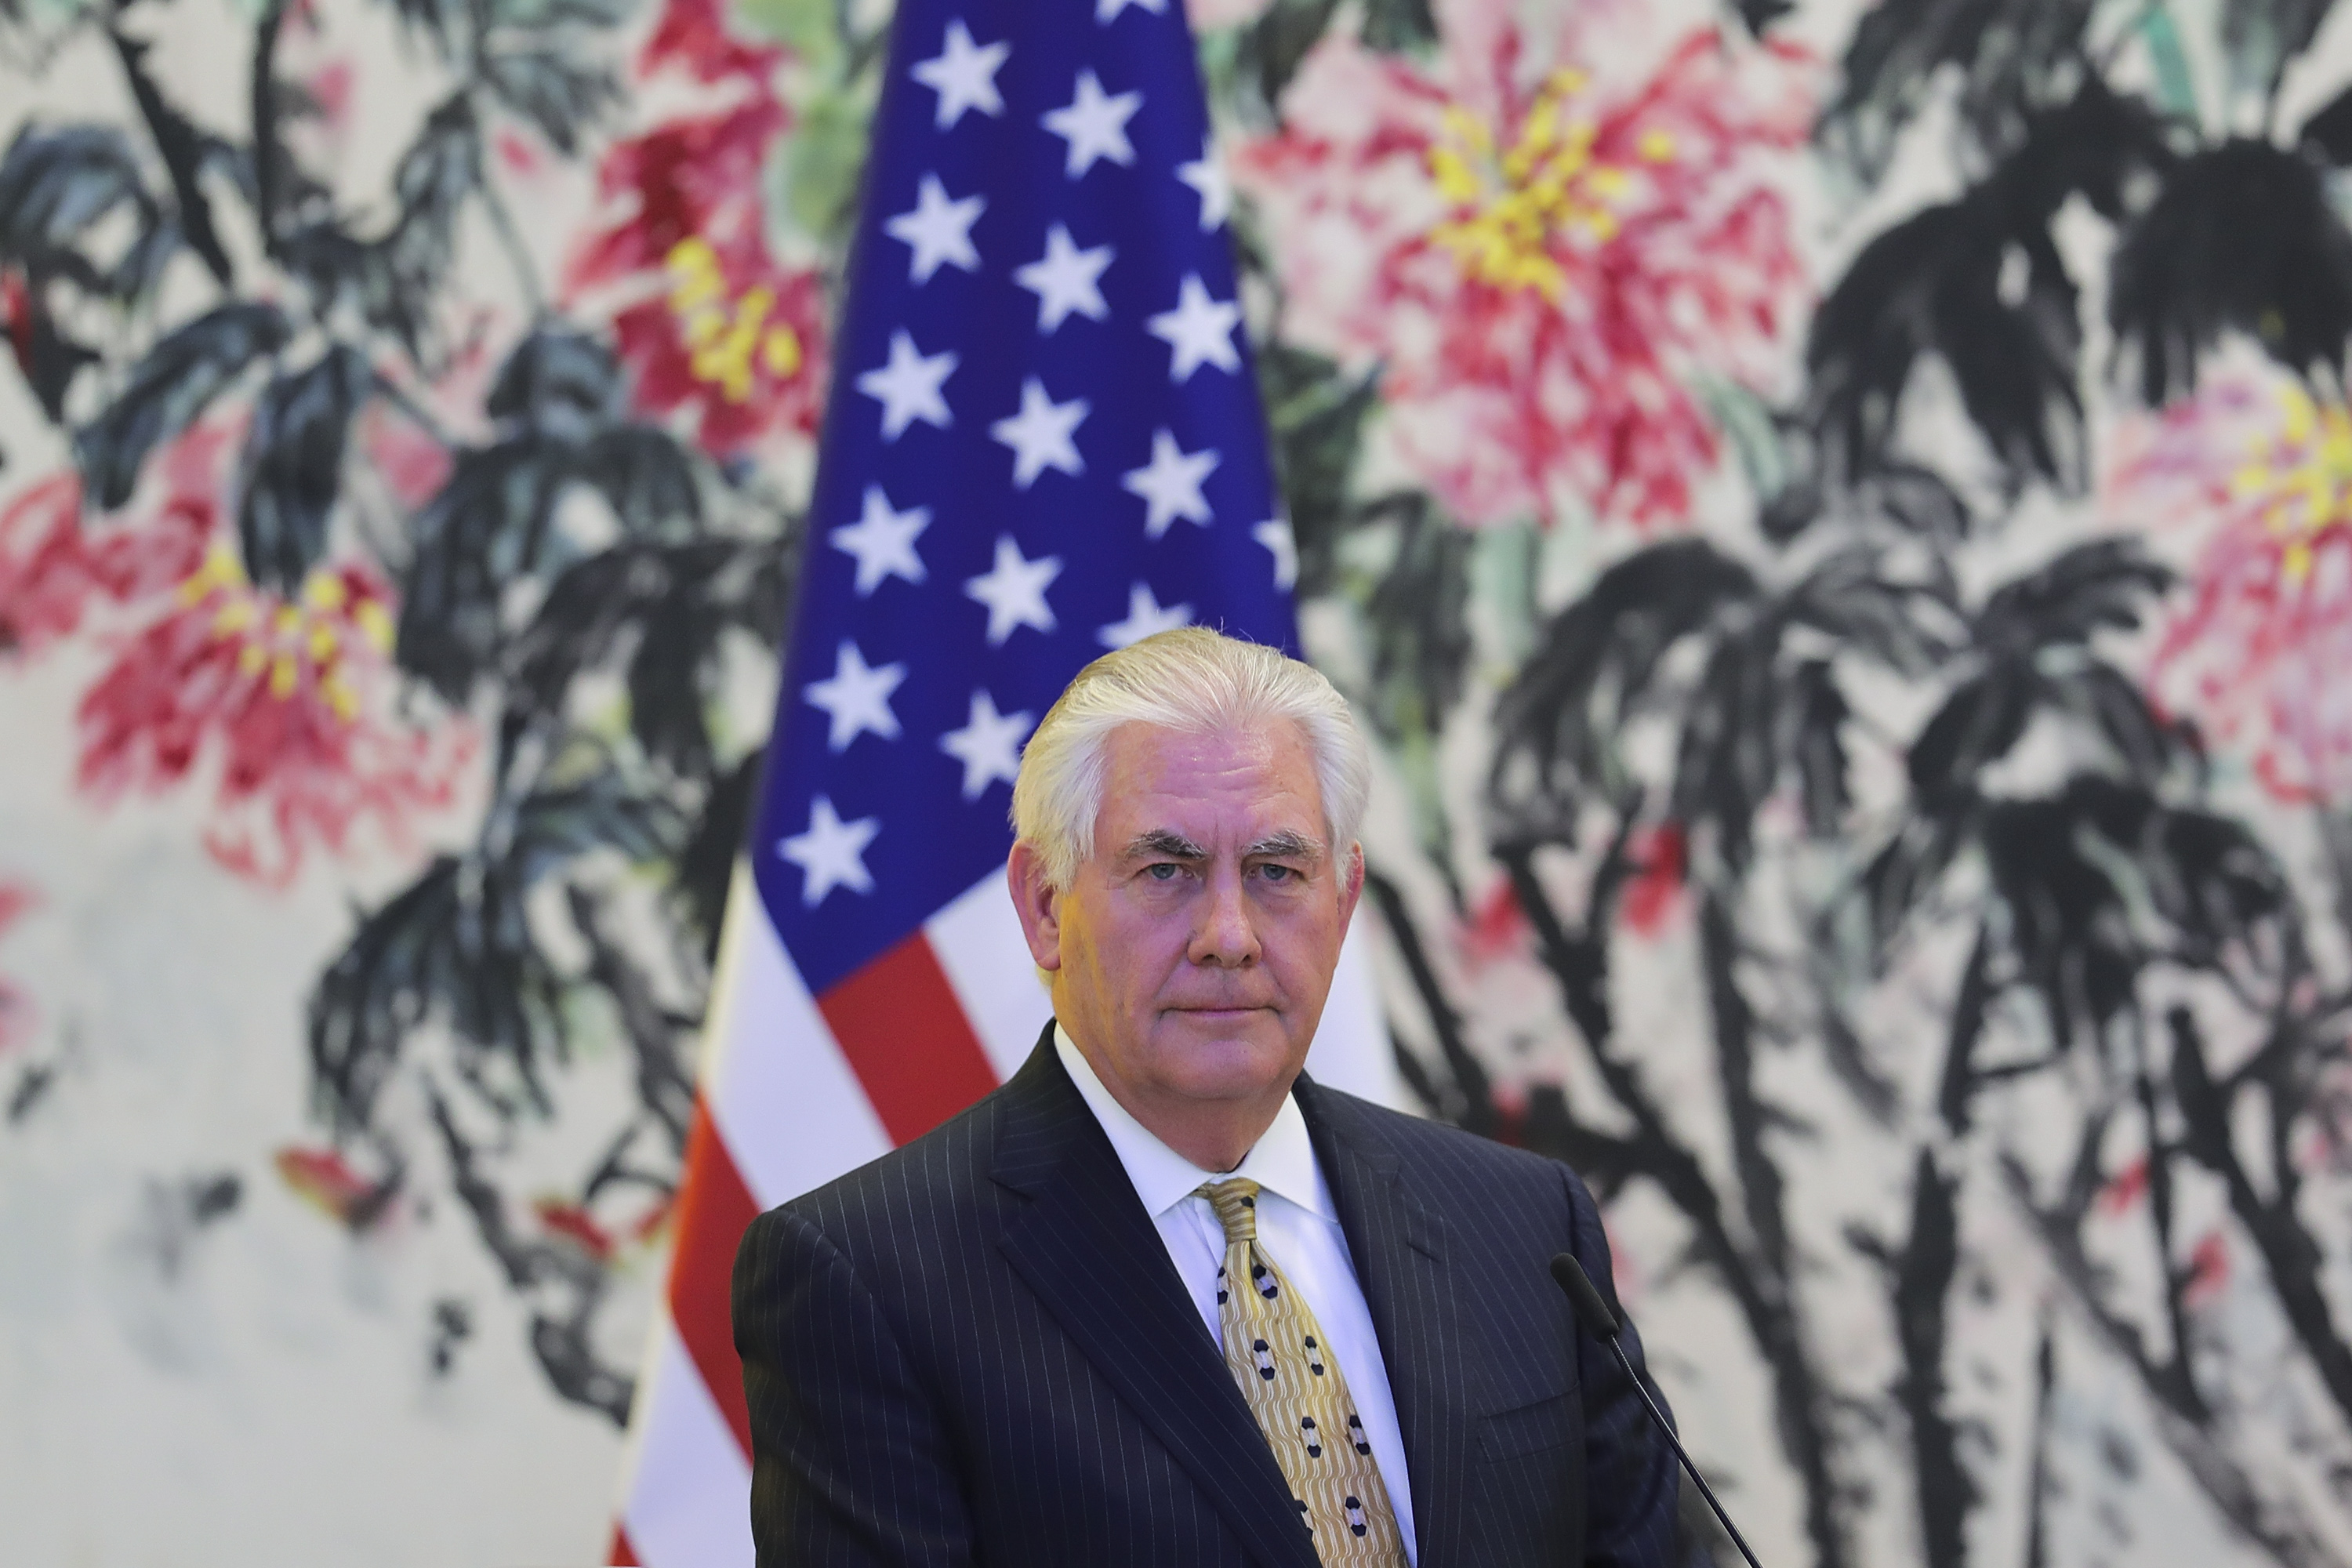 U.S. Secretary of State Rex Tillerson looks on during a joint press conference with Chinese Foreign Minister Wang Yi (not pictured) at Diaoyutai State Guesthouse on March 18, 2017 in Beijing, China. Tillerson is on his first visit to Asia as Secretary of State.